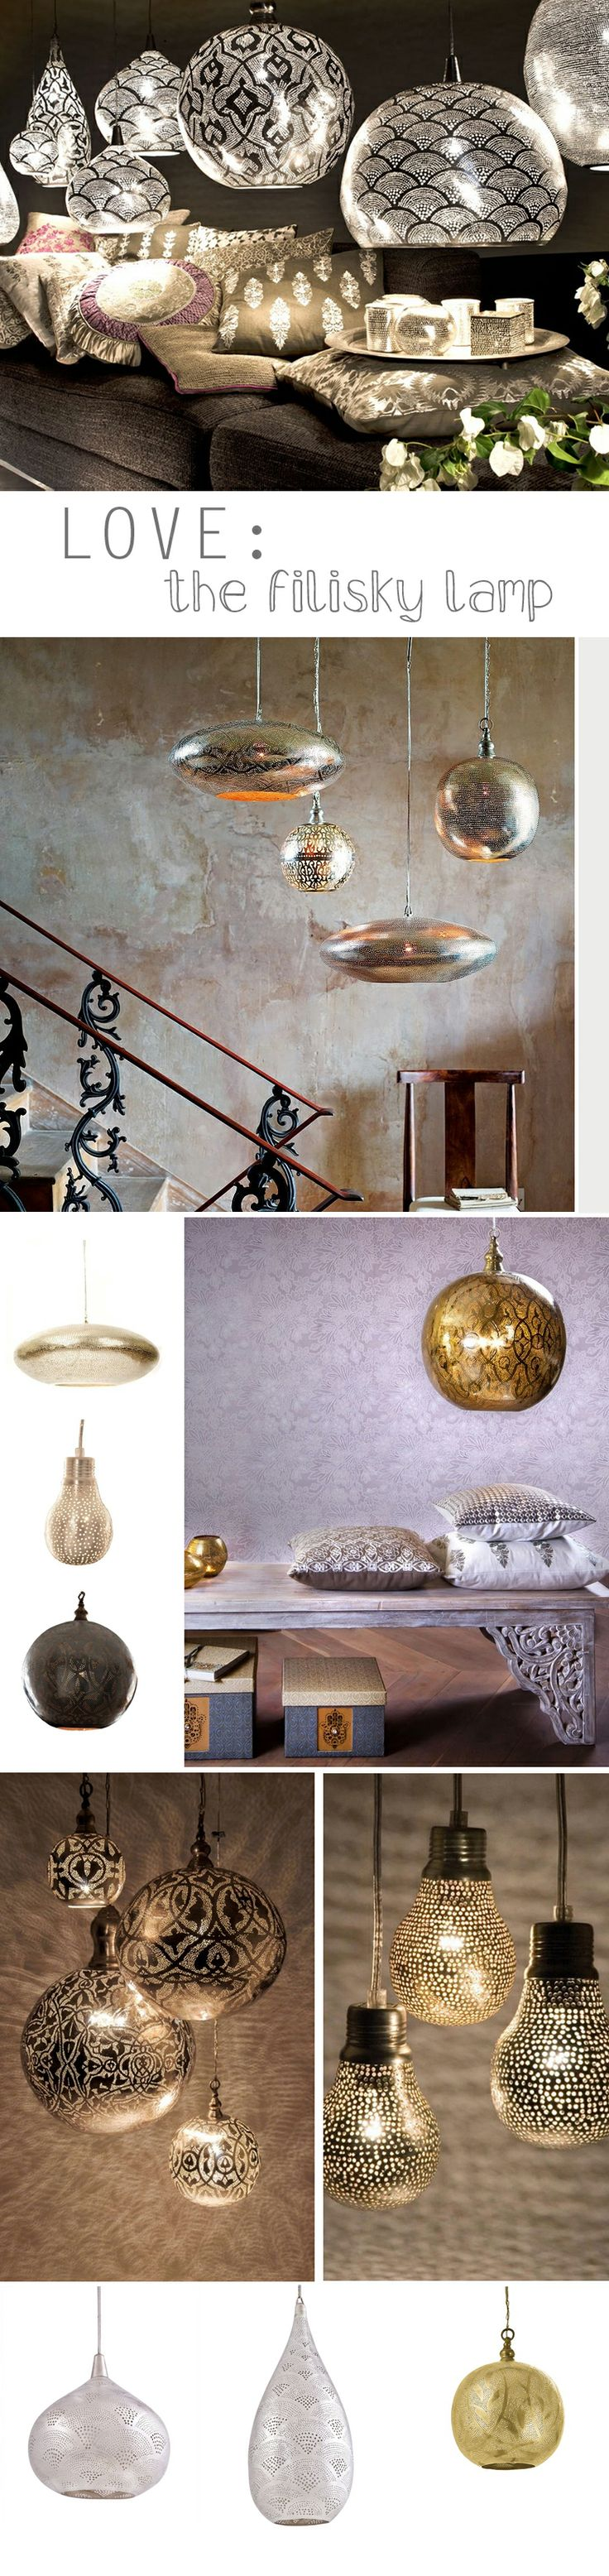 Love: filigrain and filisky lamps | deuxjoli.nl